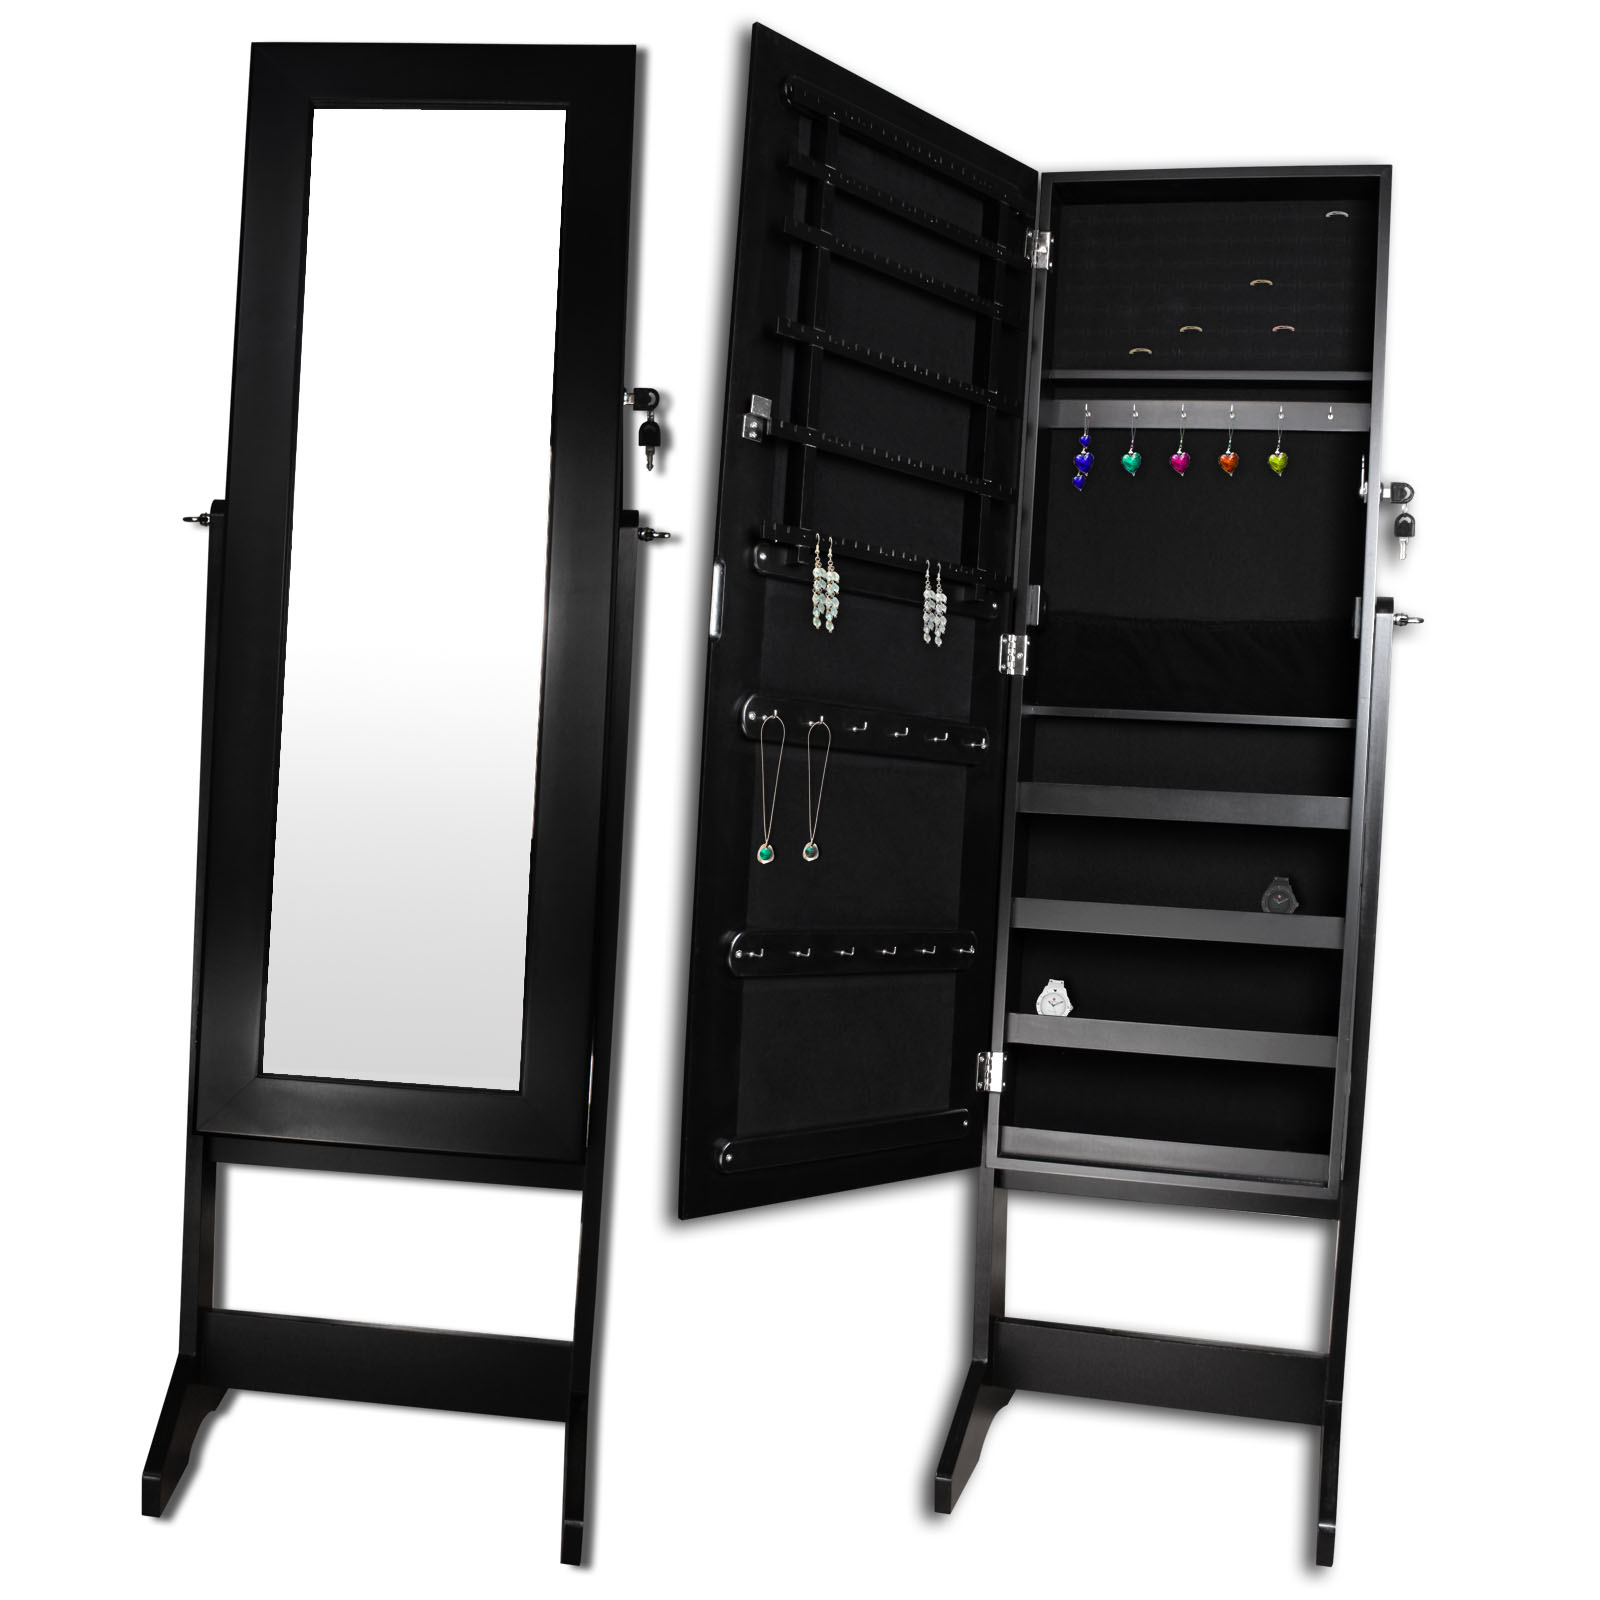 xxl spiegel schmuckschrank spiegelschrank standspiegel schmuck schrank posten ebay. Black Bedroom Furniture Sets. Home Design Ideas